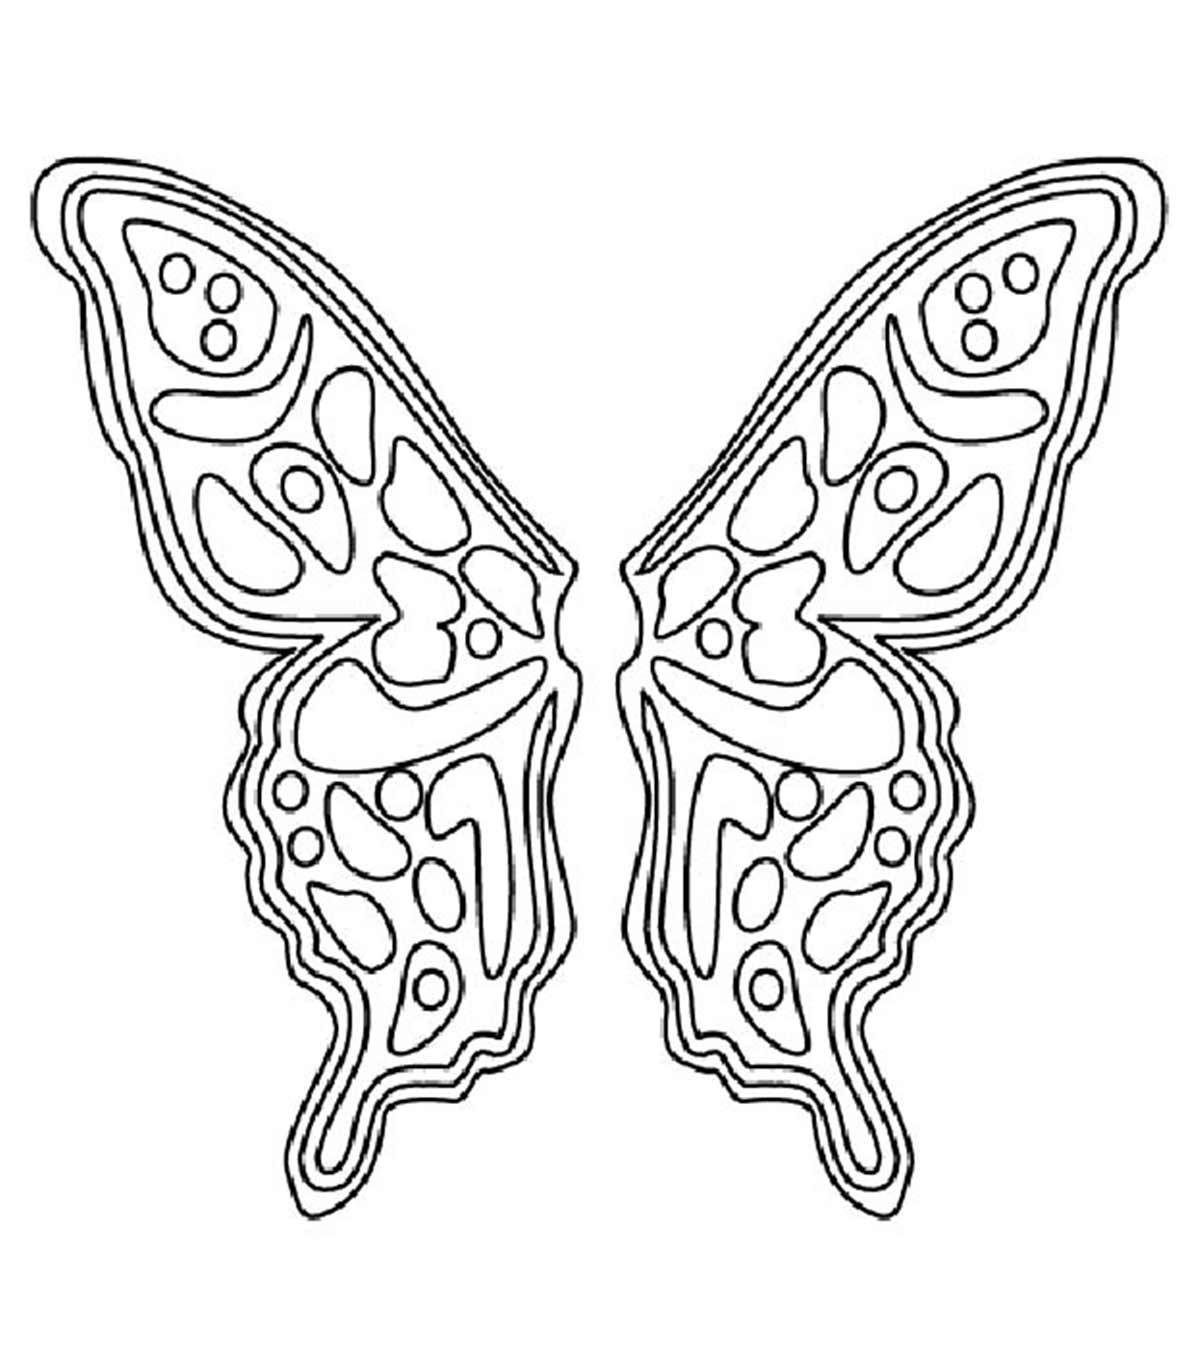 Adult Coloring Pages Animal Patterns Gallery - Whitesbelfast | 1350x1200